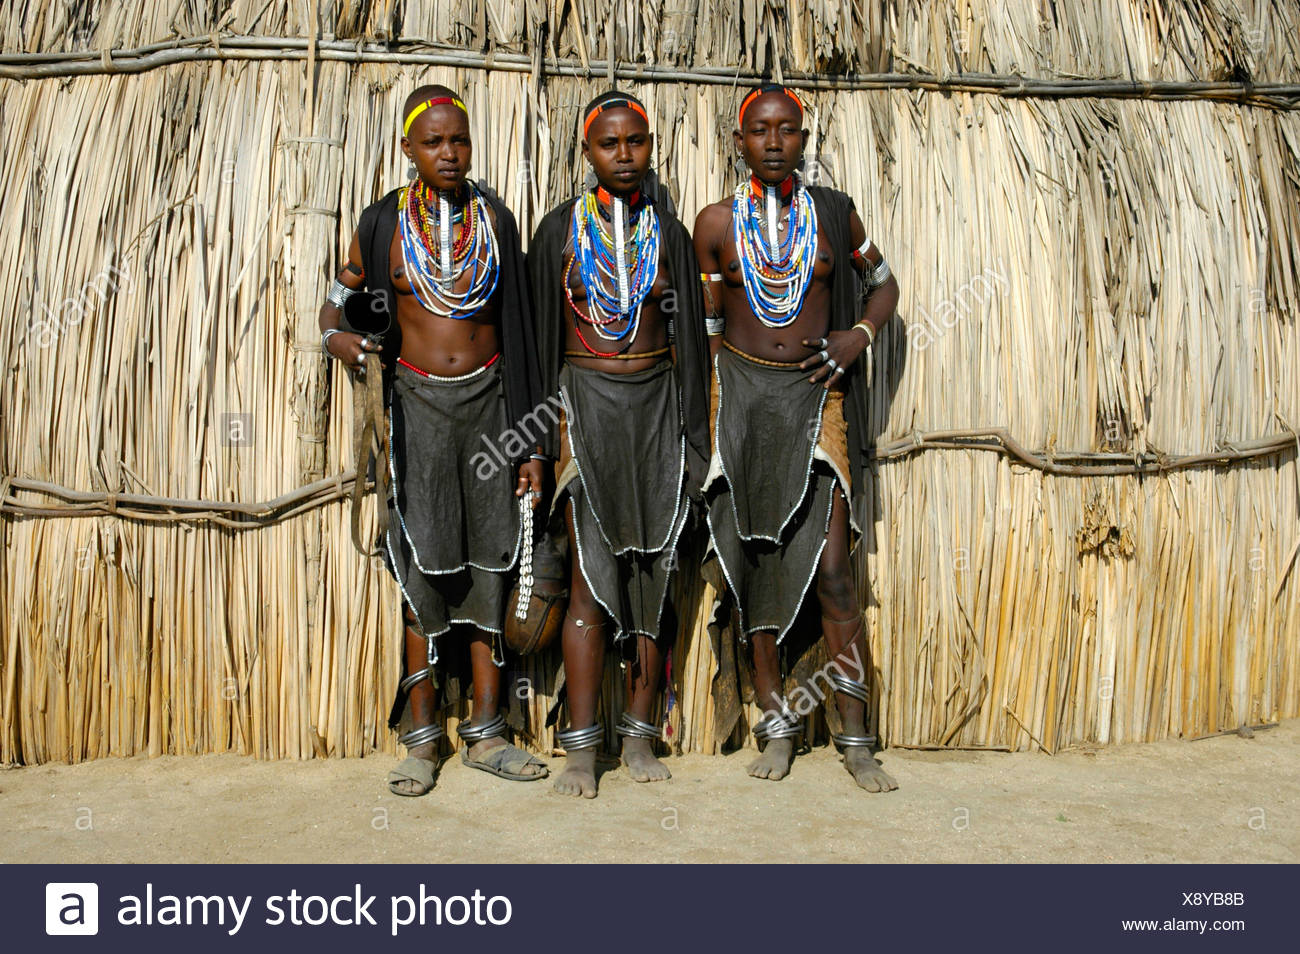 Three young women wearing leather skirts and lots of necklaces in front of straw hut, Erbore people, Weyto, Ethiopia, Africa - Stock Image